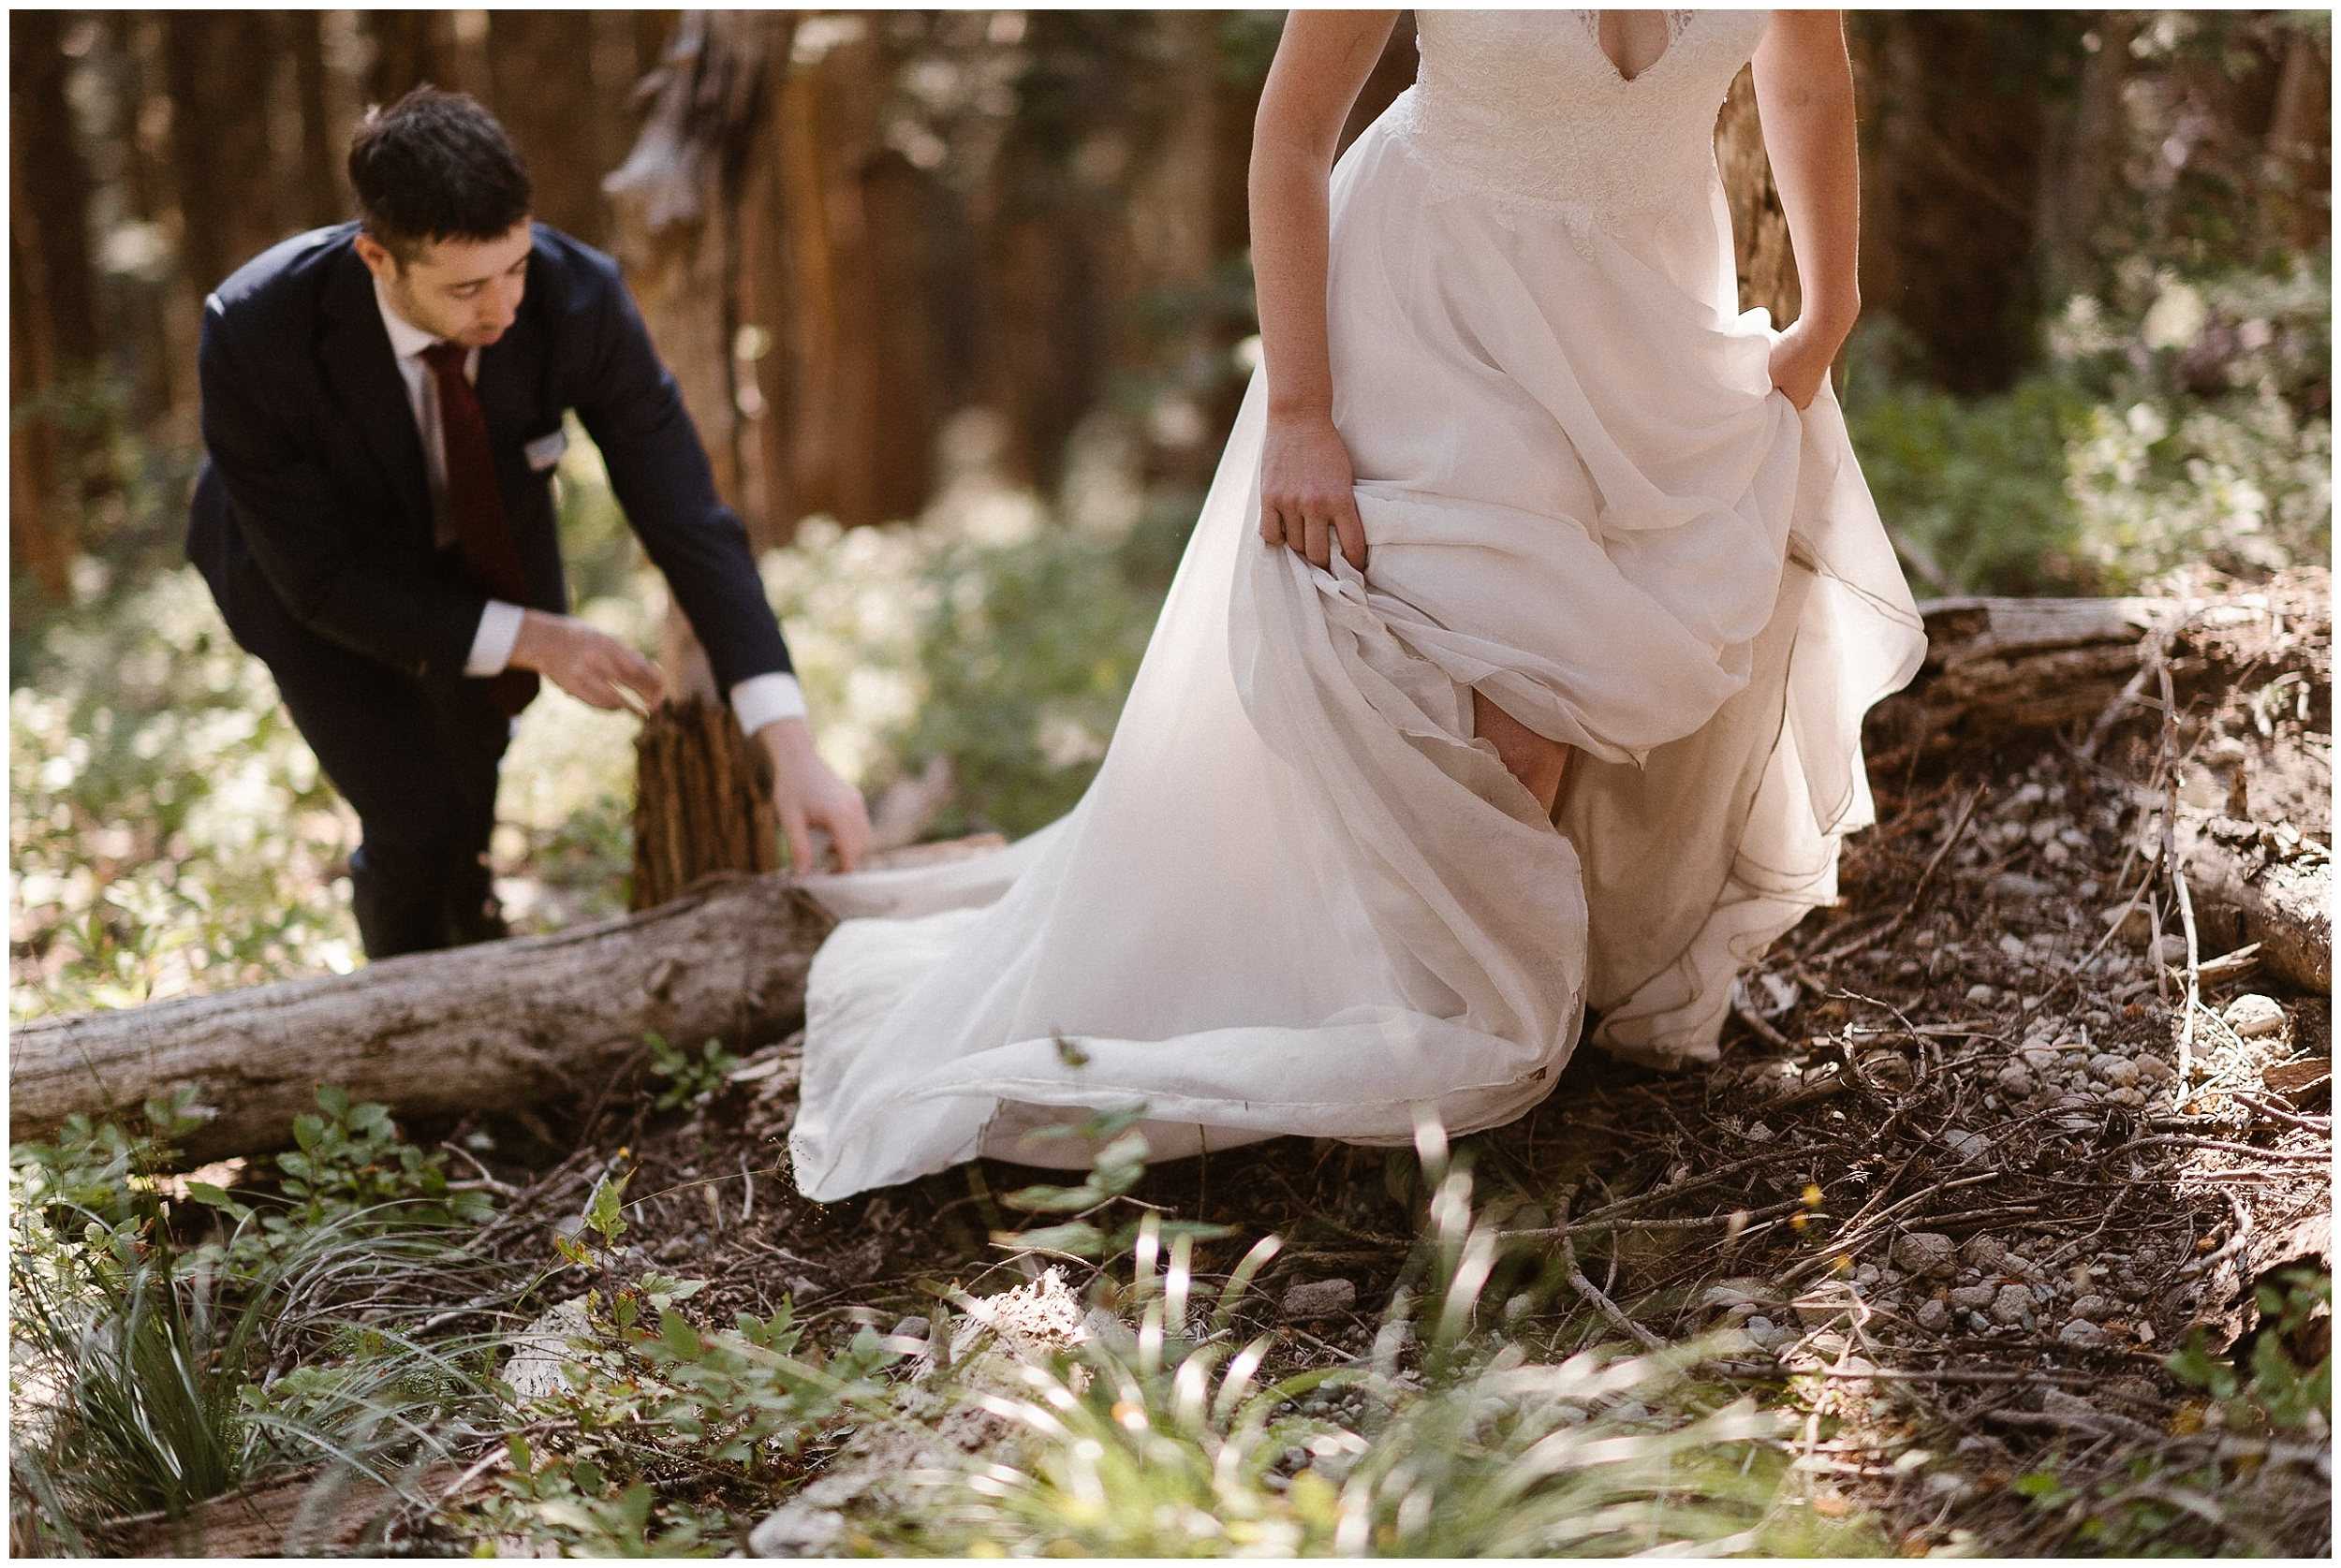 David reaches down to help Lauryn free her dress from a stump as they hike back down the mountain in their wedding attire. Hiking in their wedding outfits was one of the unique elopement ideas they wanted to capture in their elopement pictures.